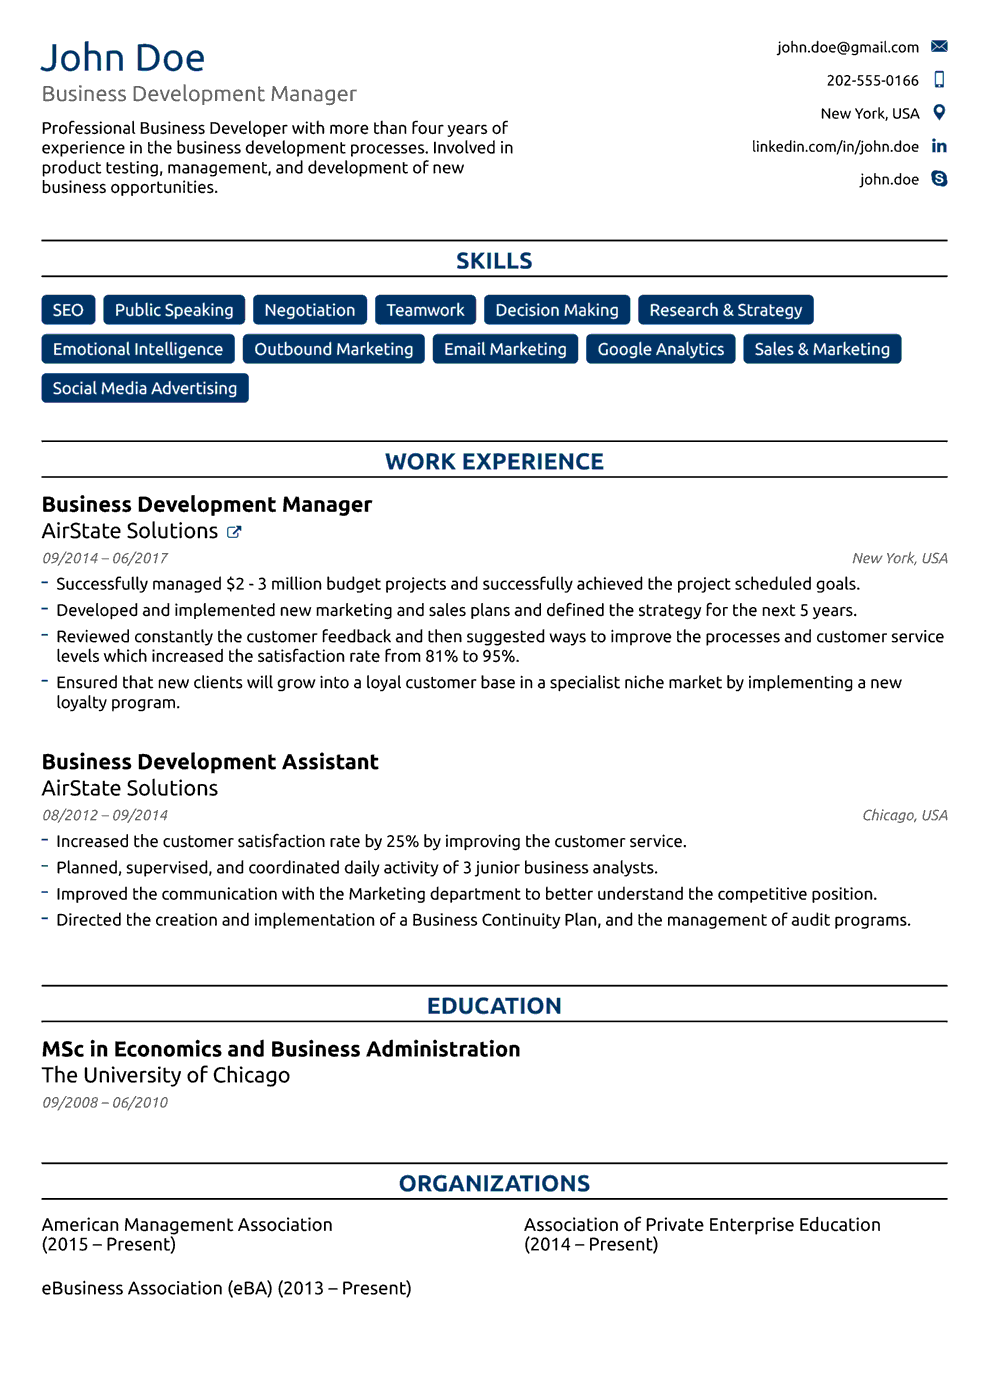 Free Resume Templates for 2020 [Download Now]